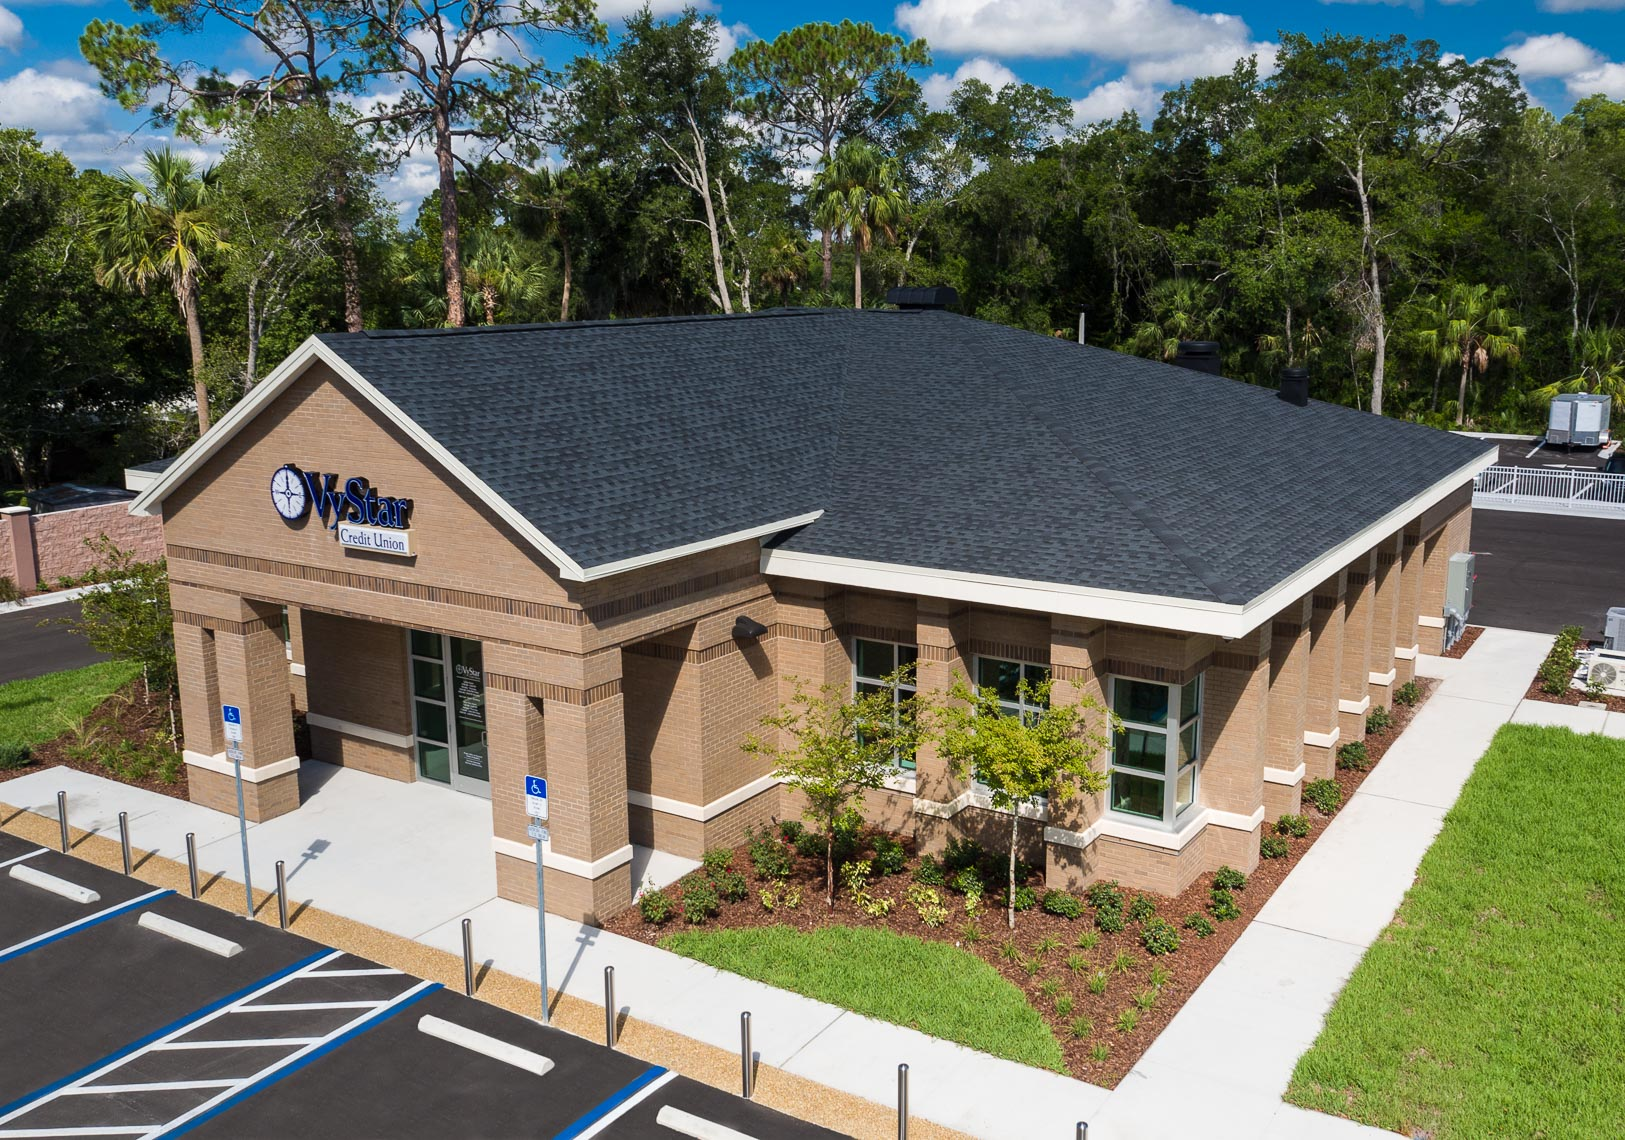 Aerial Vy Star Credit Union - Mark Borosch Photography - Ormond Beach, FL